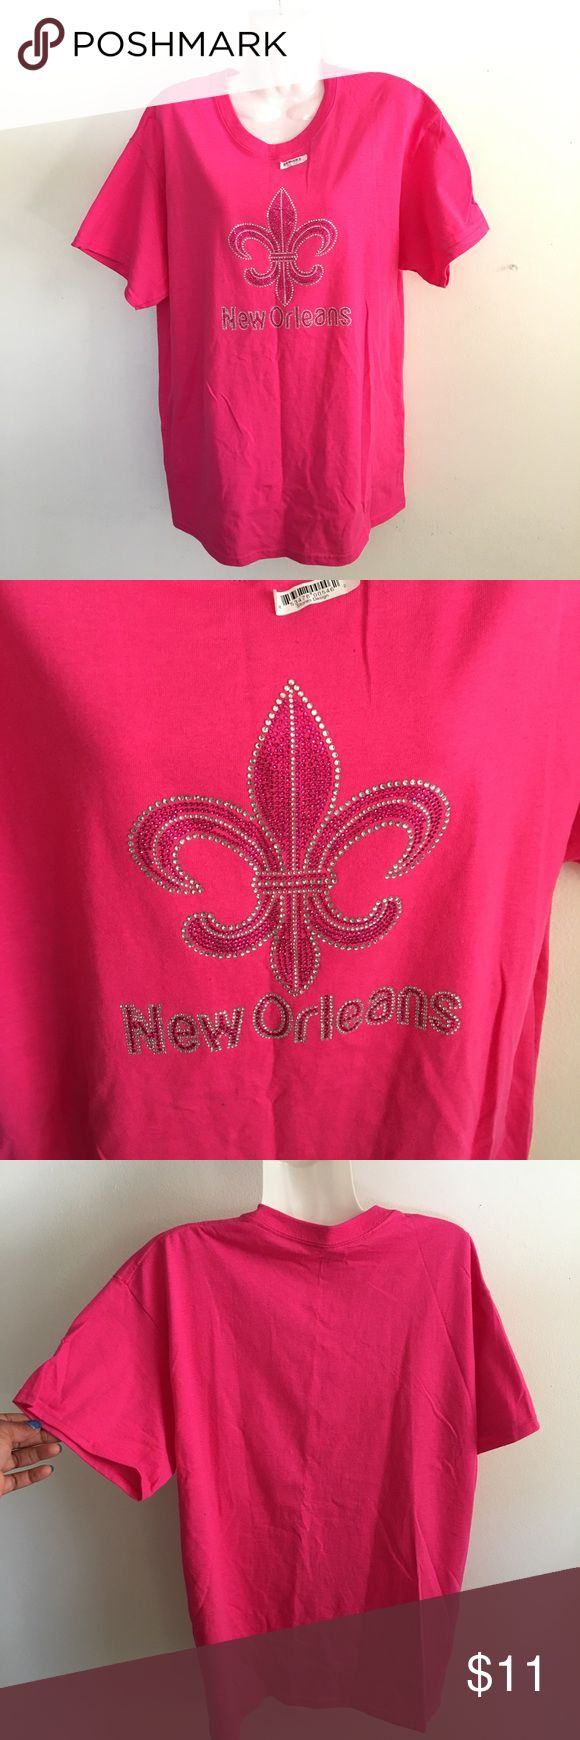 Hot Pink Rhinestoned New Orleans Saints New. Tshirt brand is Gildan. 100% Cotton Tops Tees - Short Sleeve